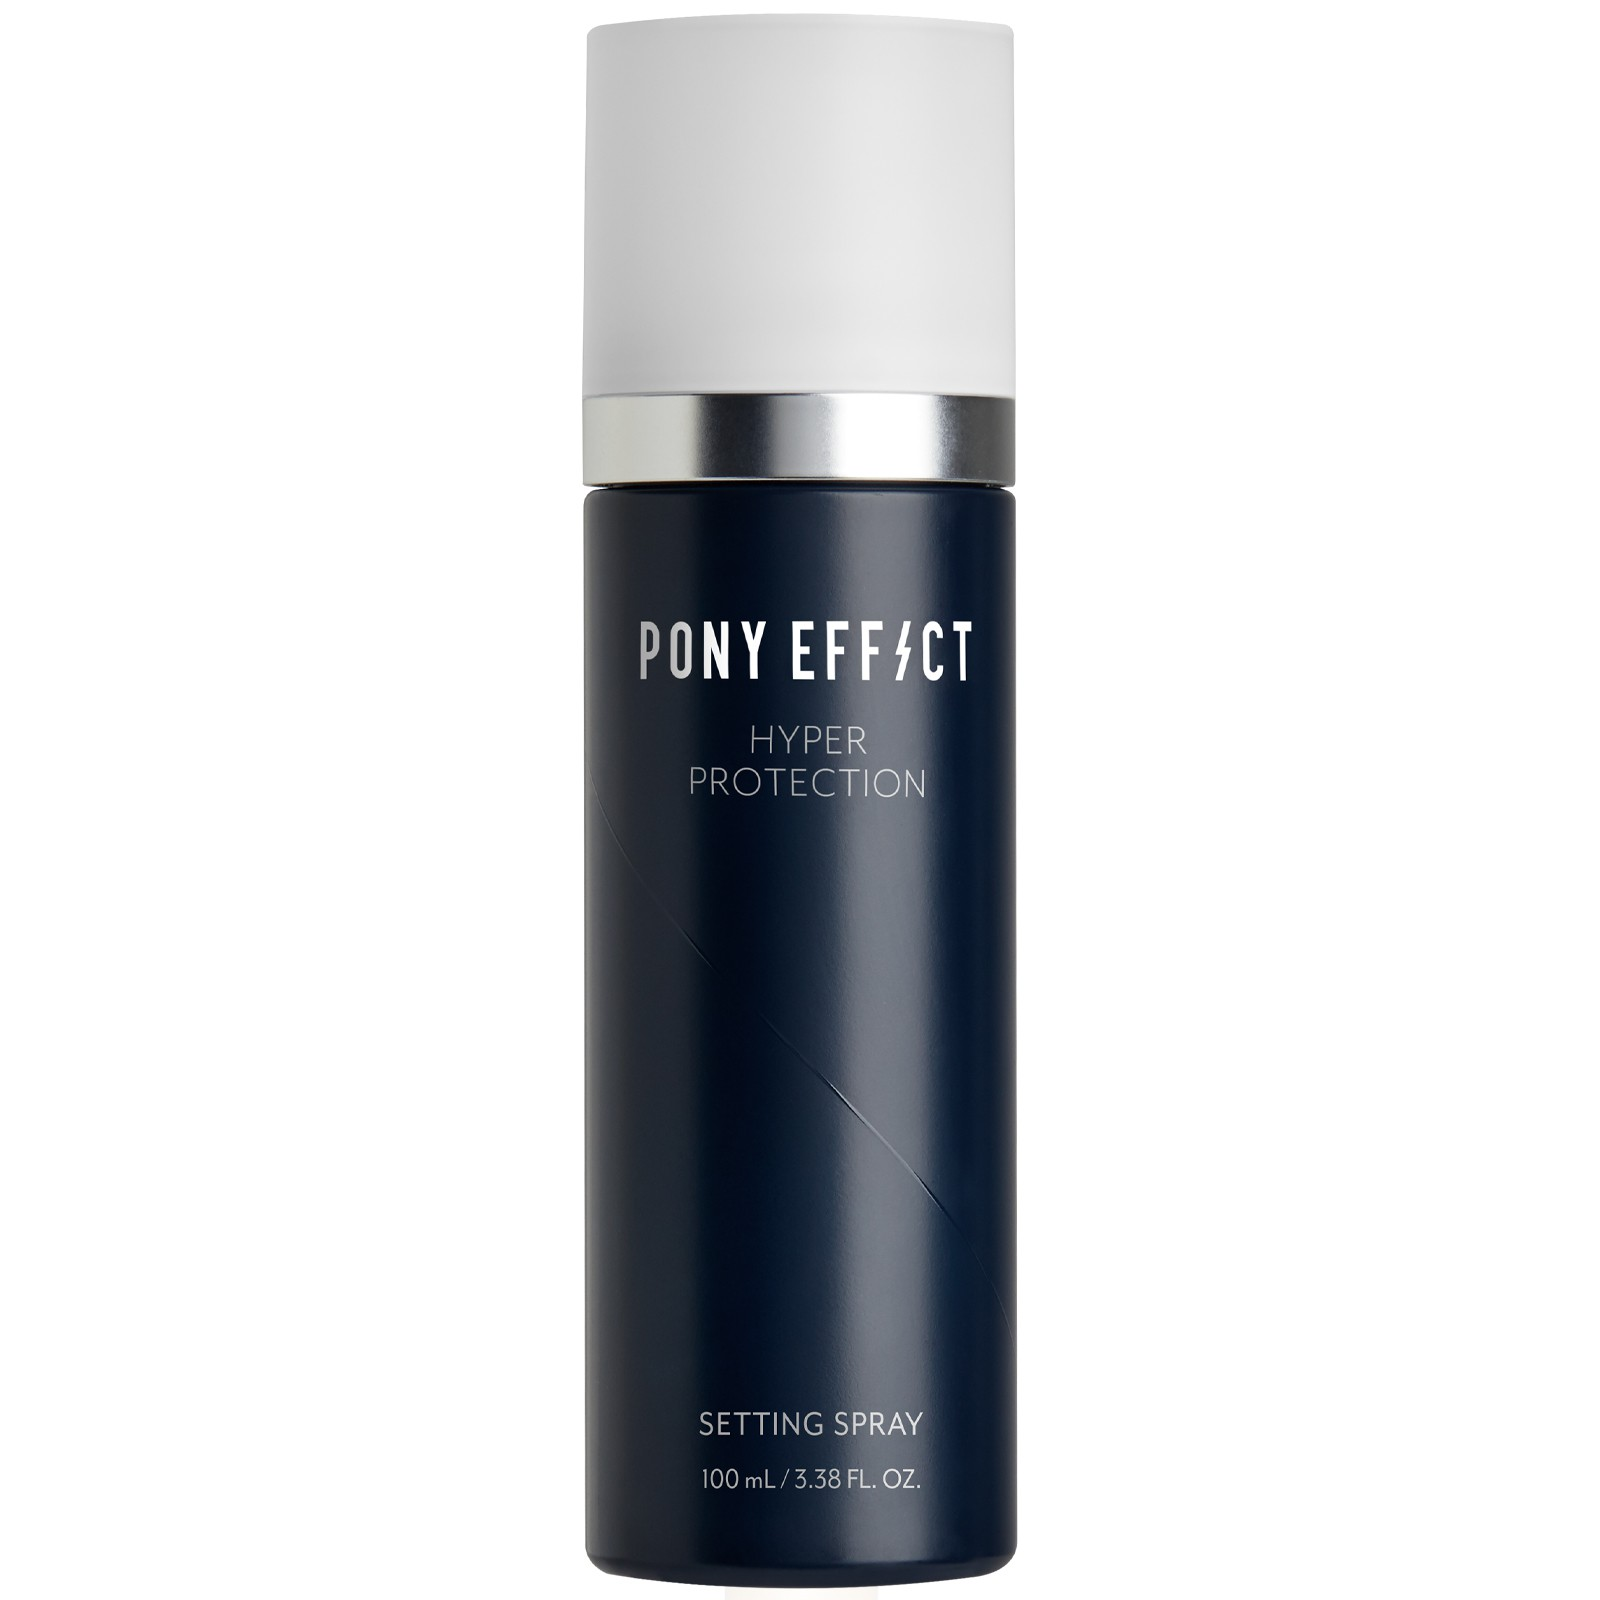 [PONY EFFECT Official] Hyper Protection Setting Spray   Long-Lasting Setting Spray With Comfortable Finish